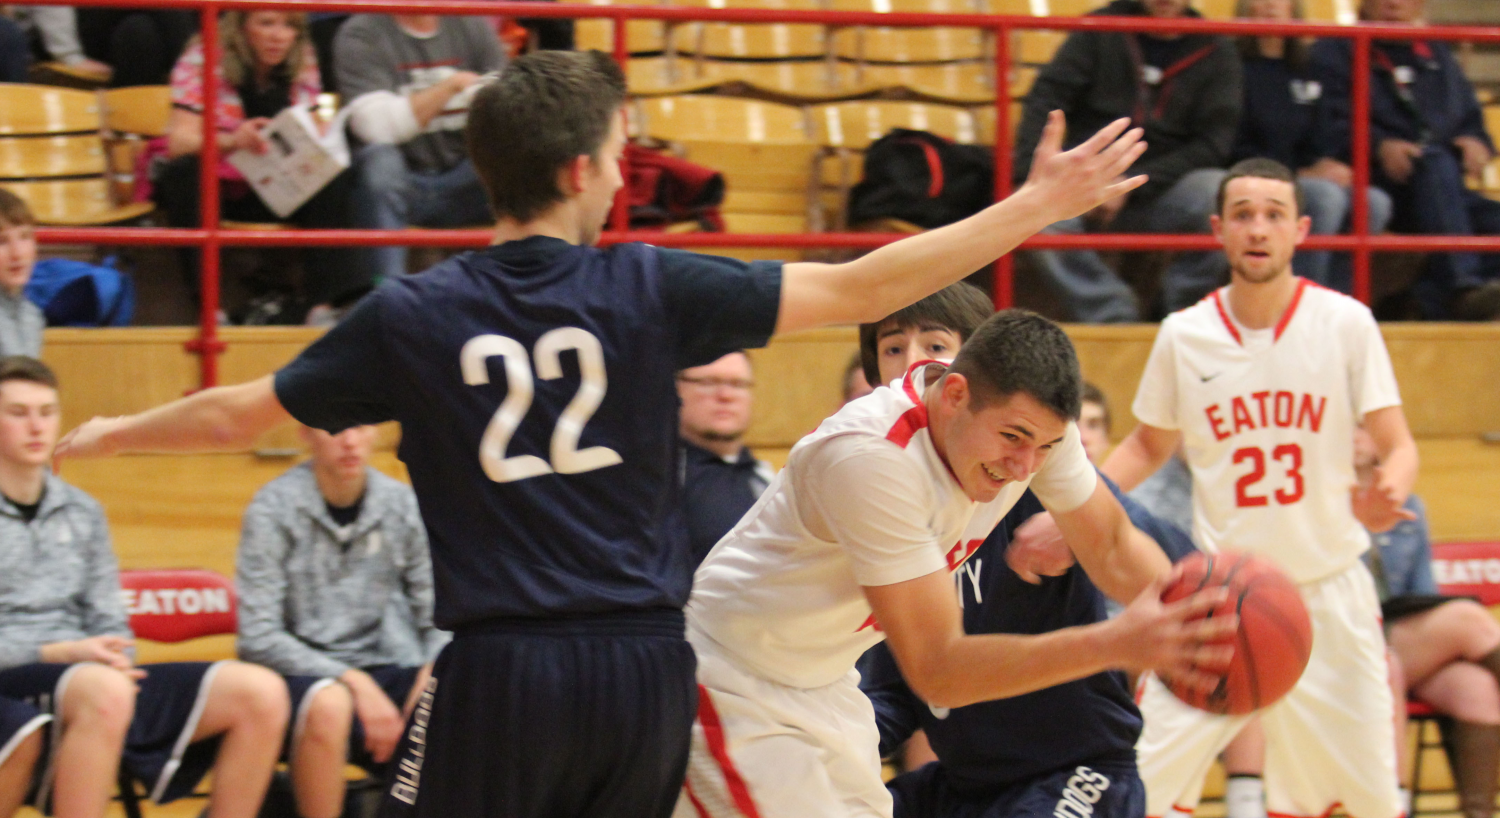 Reds complete final regular season task; head into tourney as a 1 seed